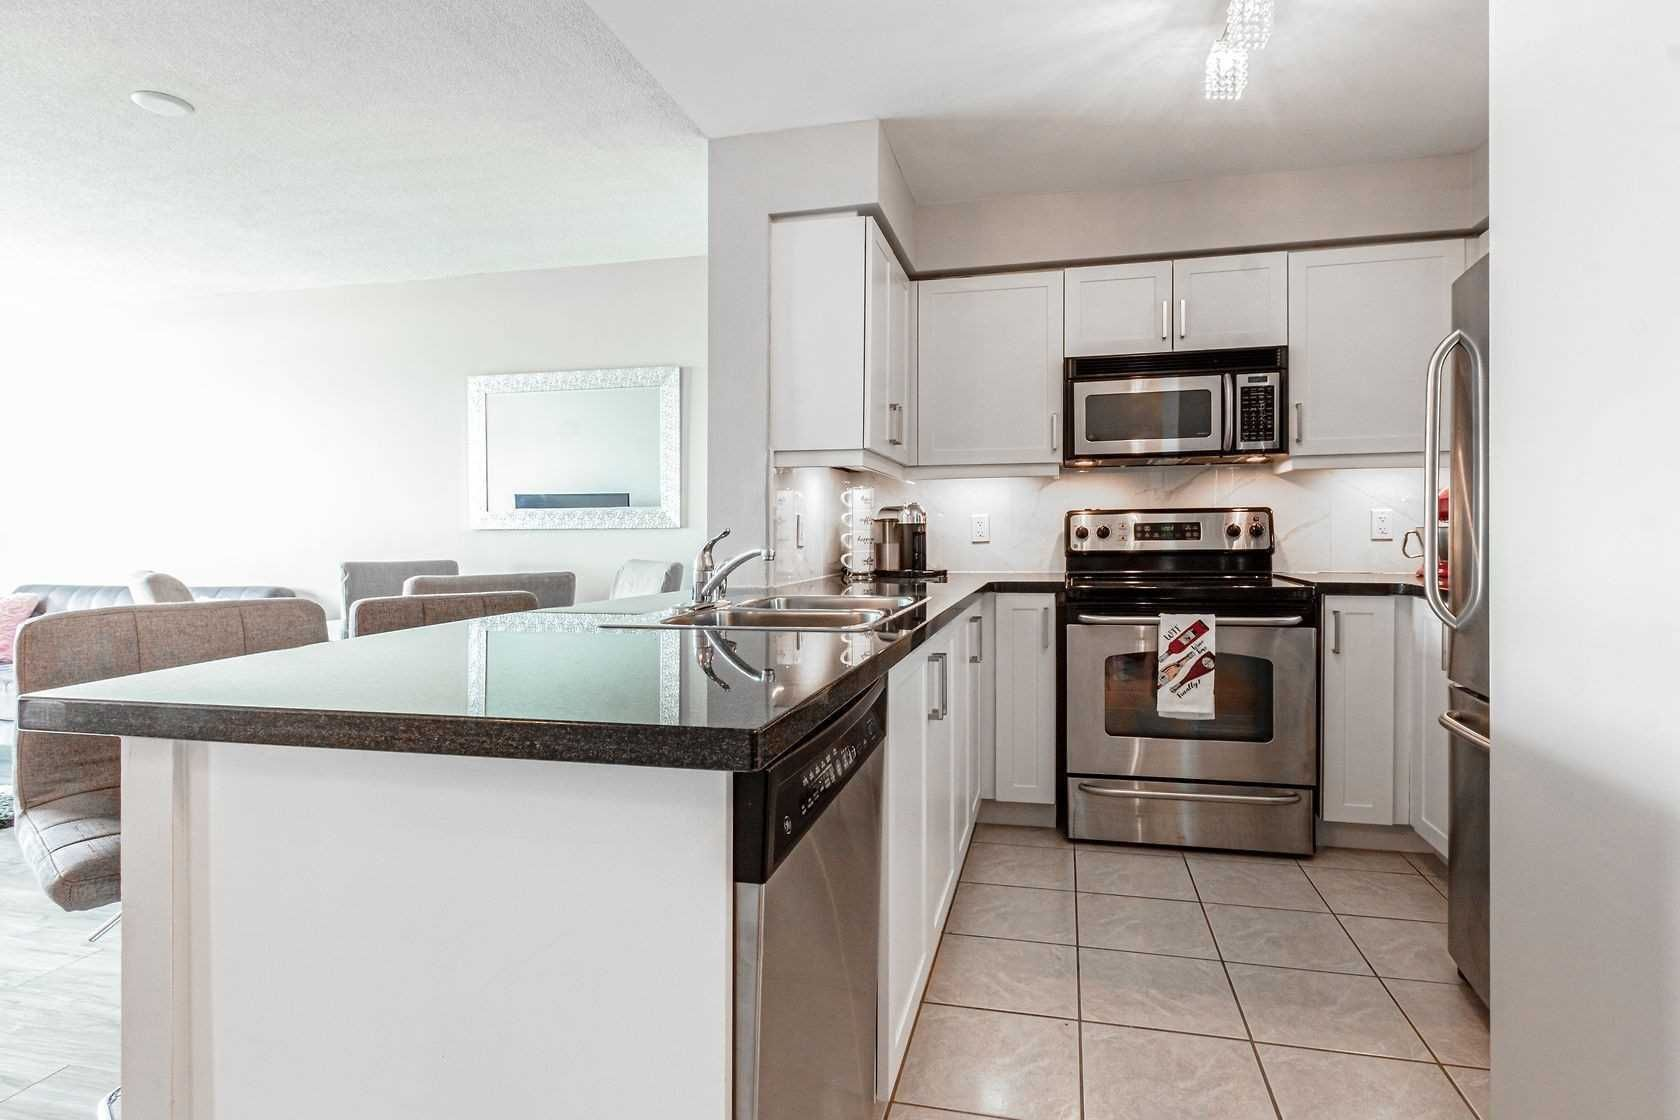 4889 Kimbermount Ave, unit 1706 for rent in Toronto - image #2